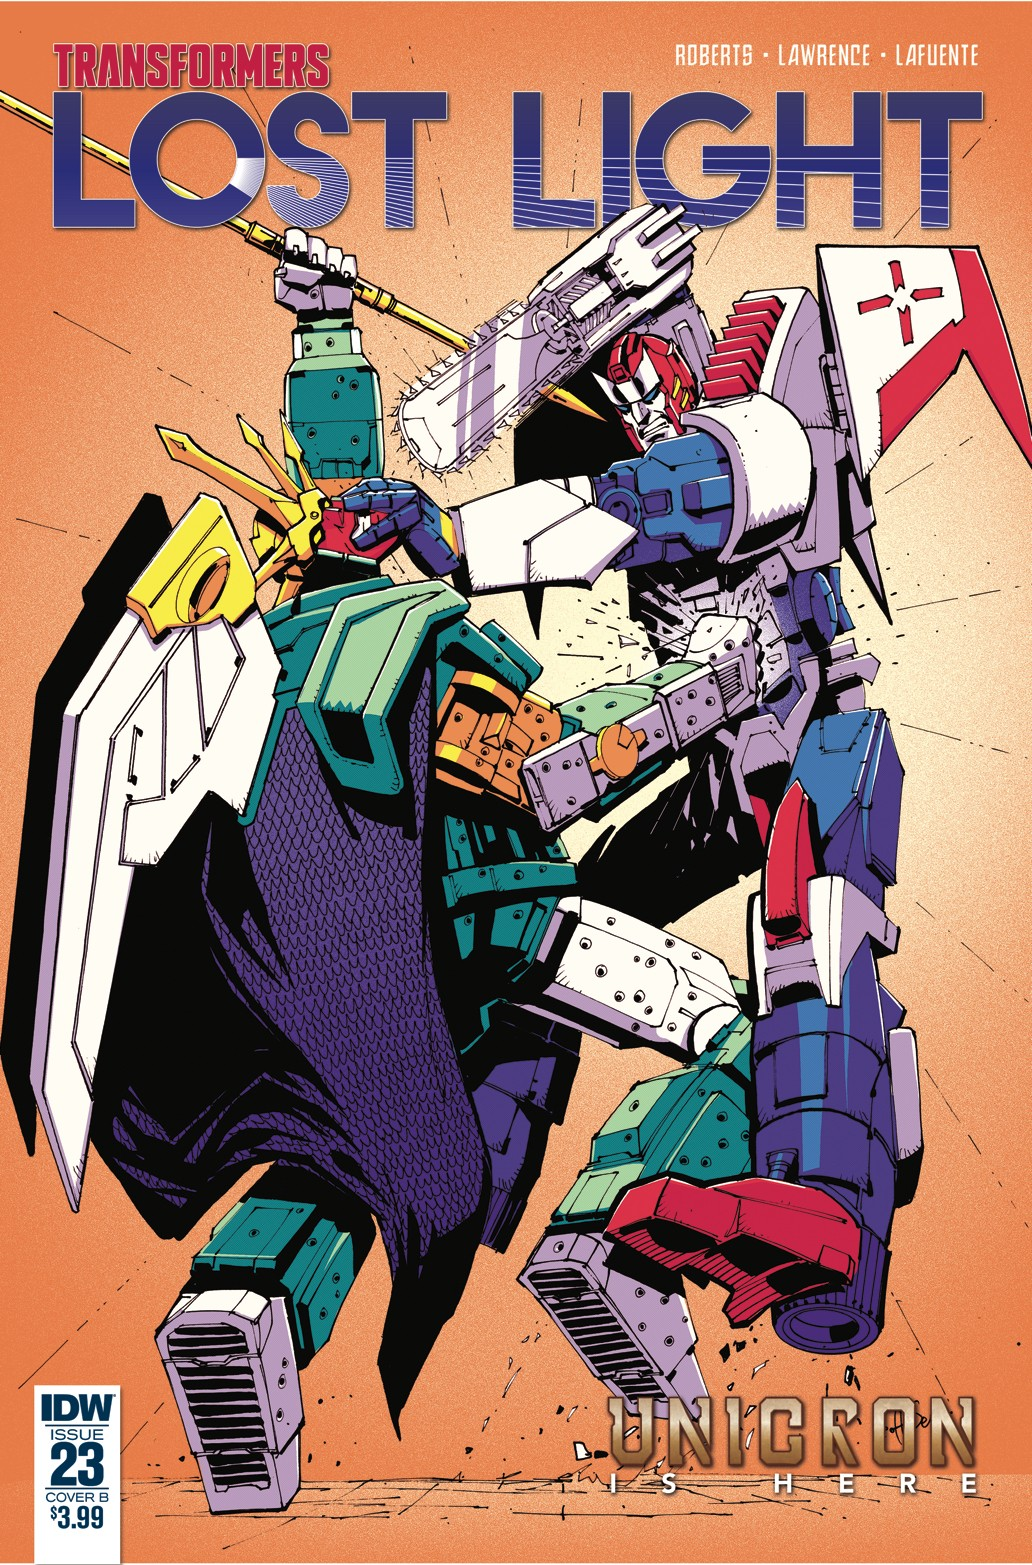 Transformers News: Variant Cover for IDW Transformers: Lost Light #23 by Geoff Senior / Josh Burcham